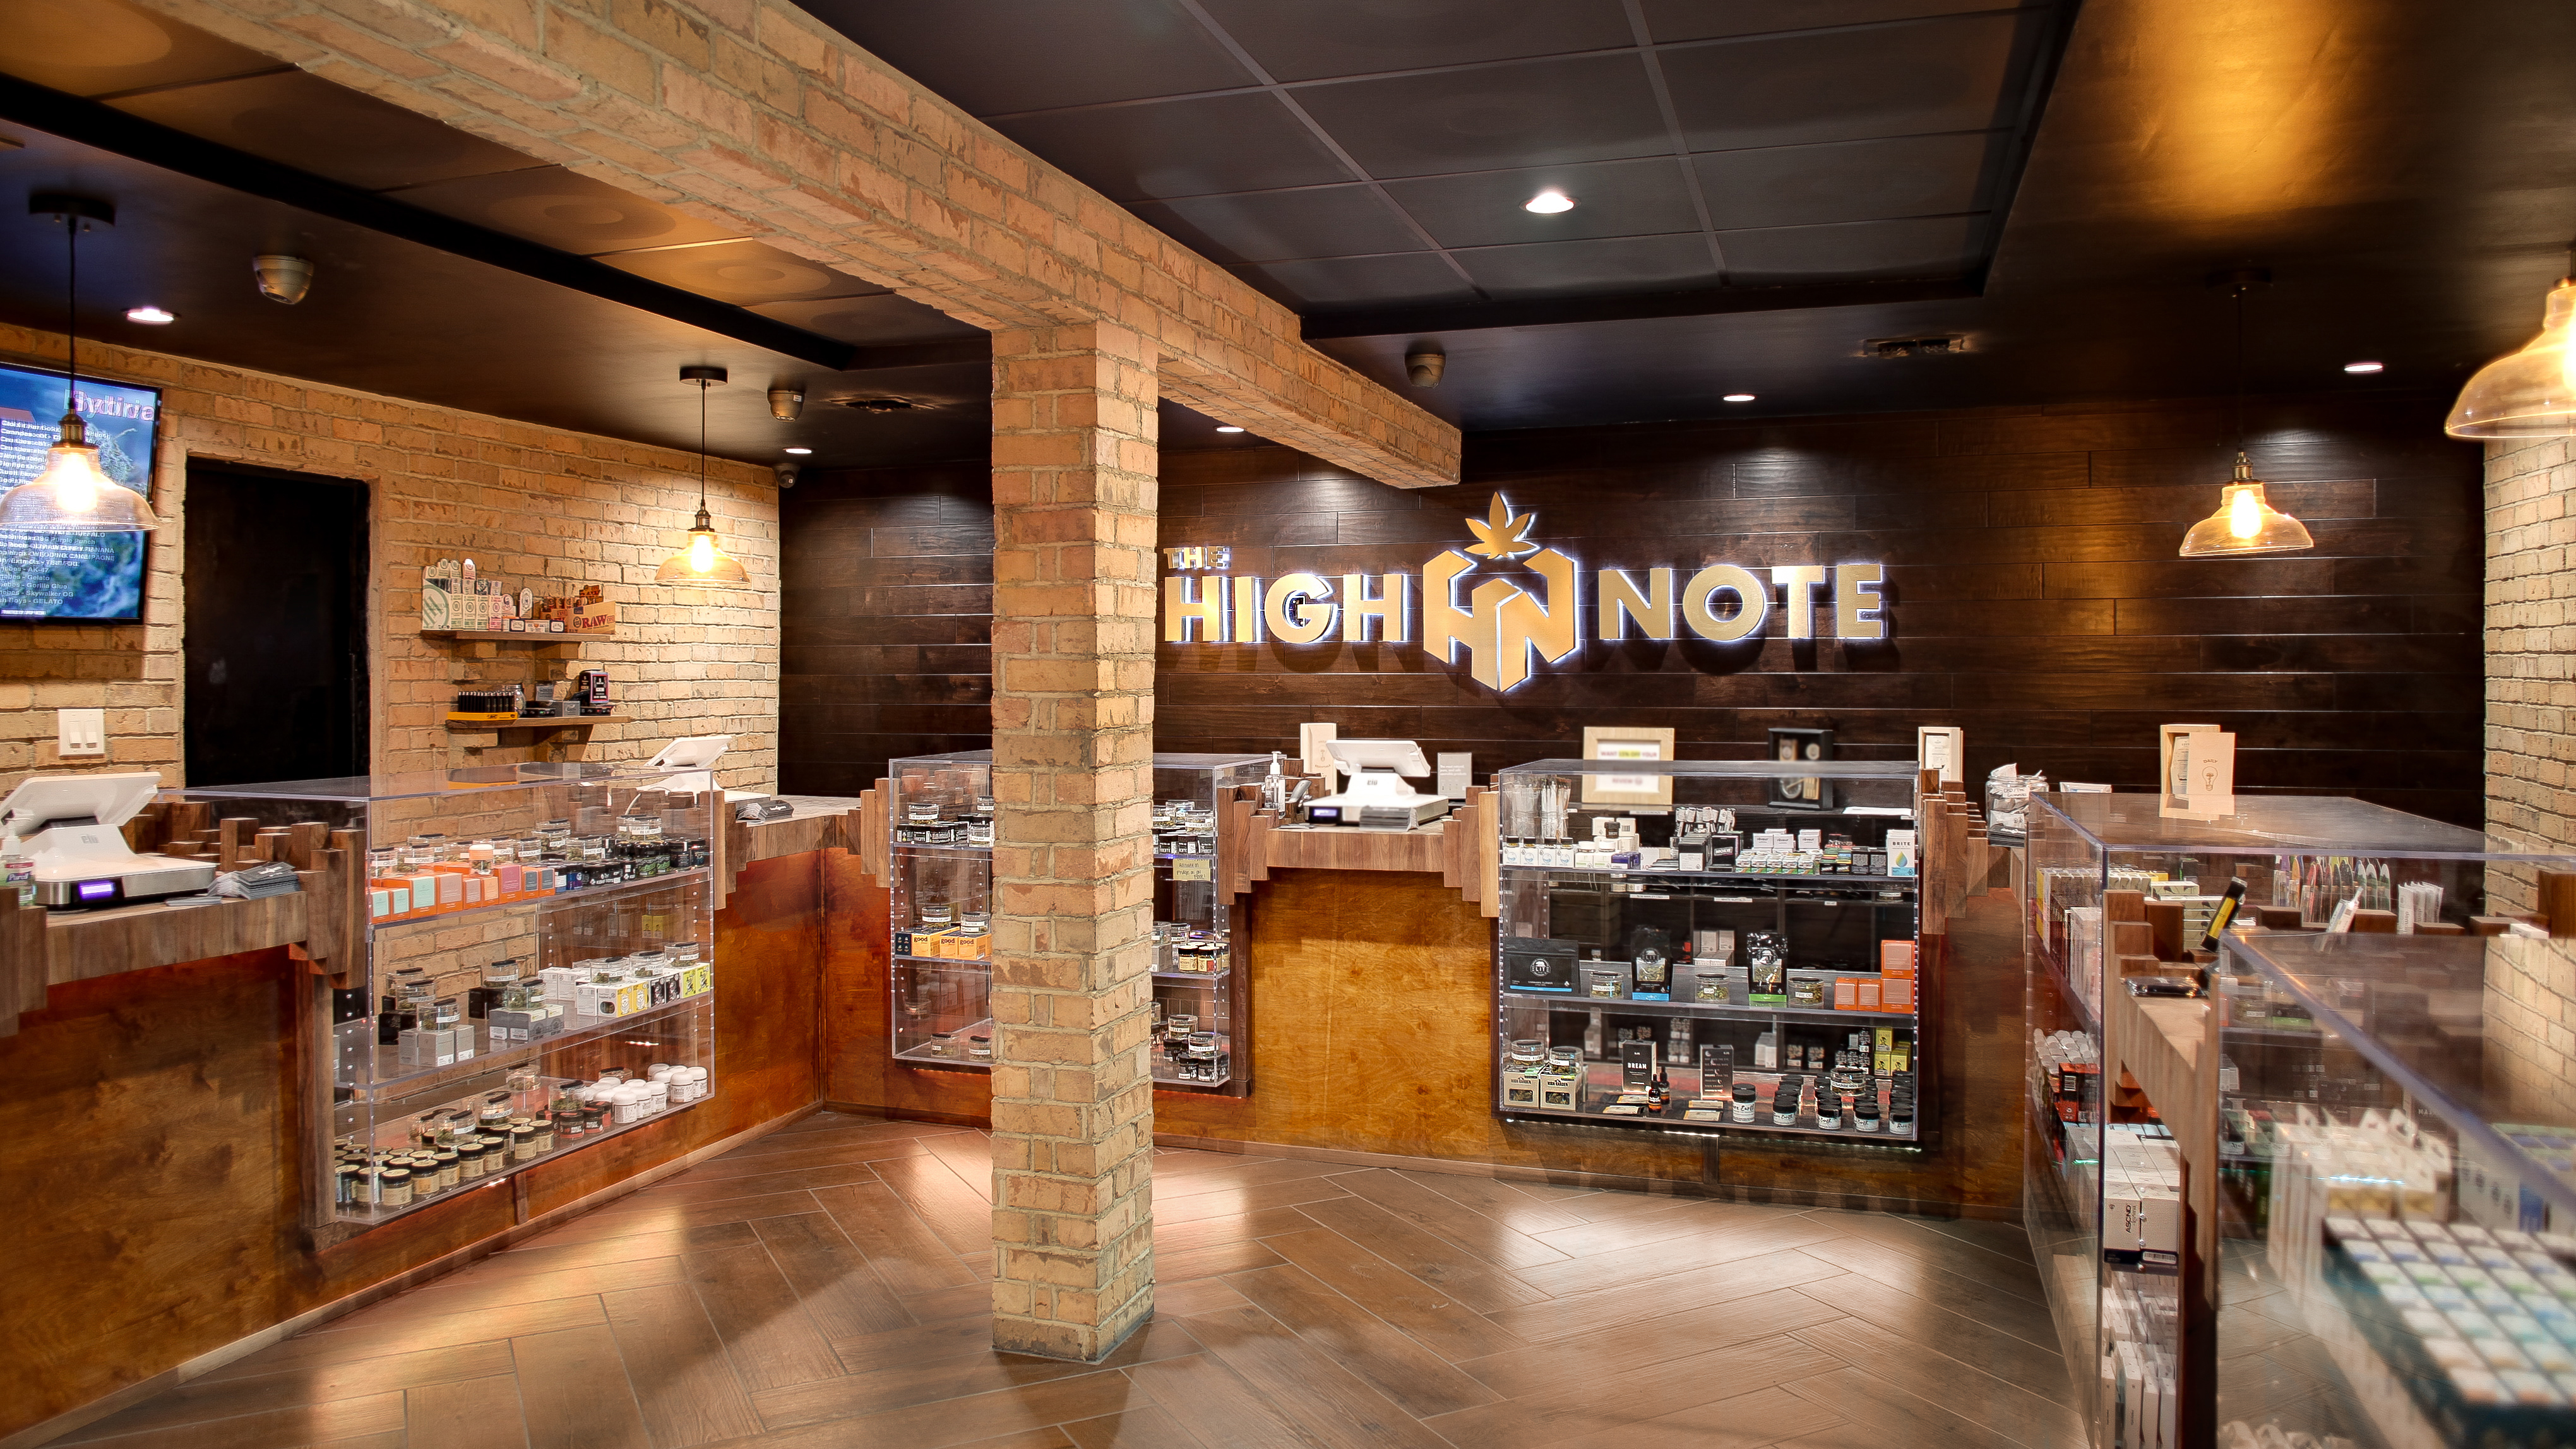 The High Note Dispensary